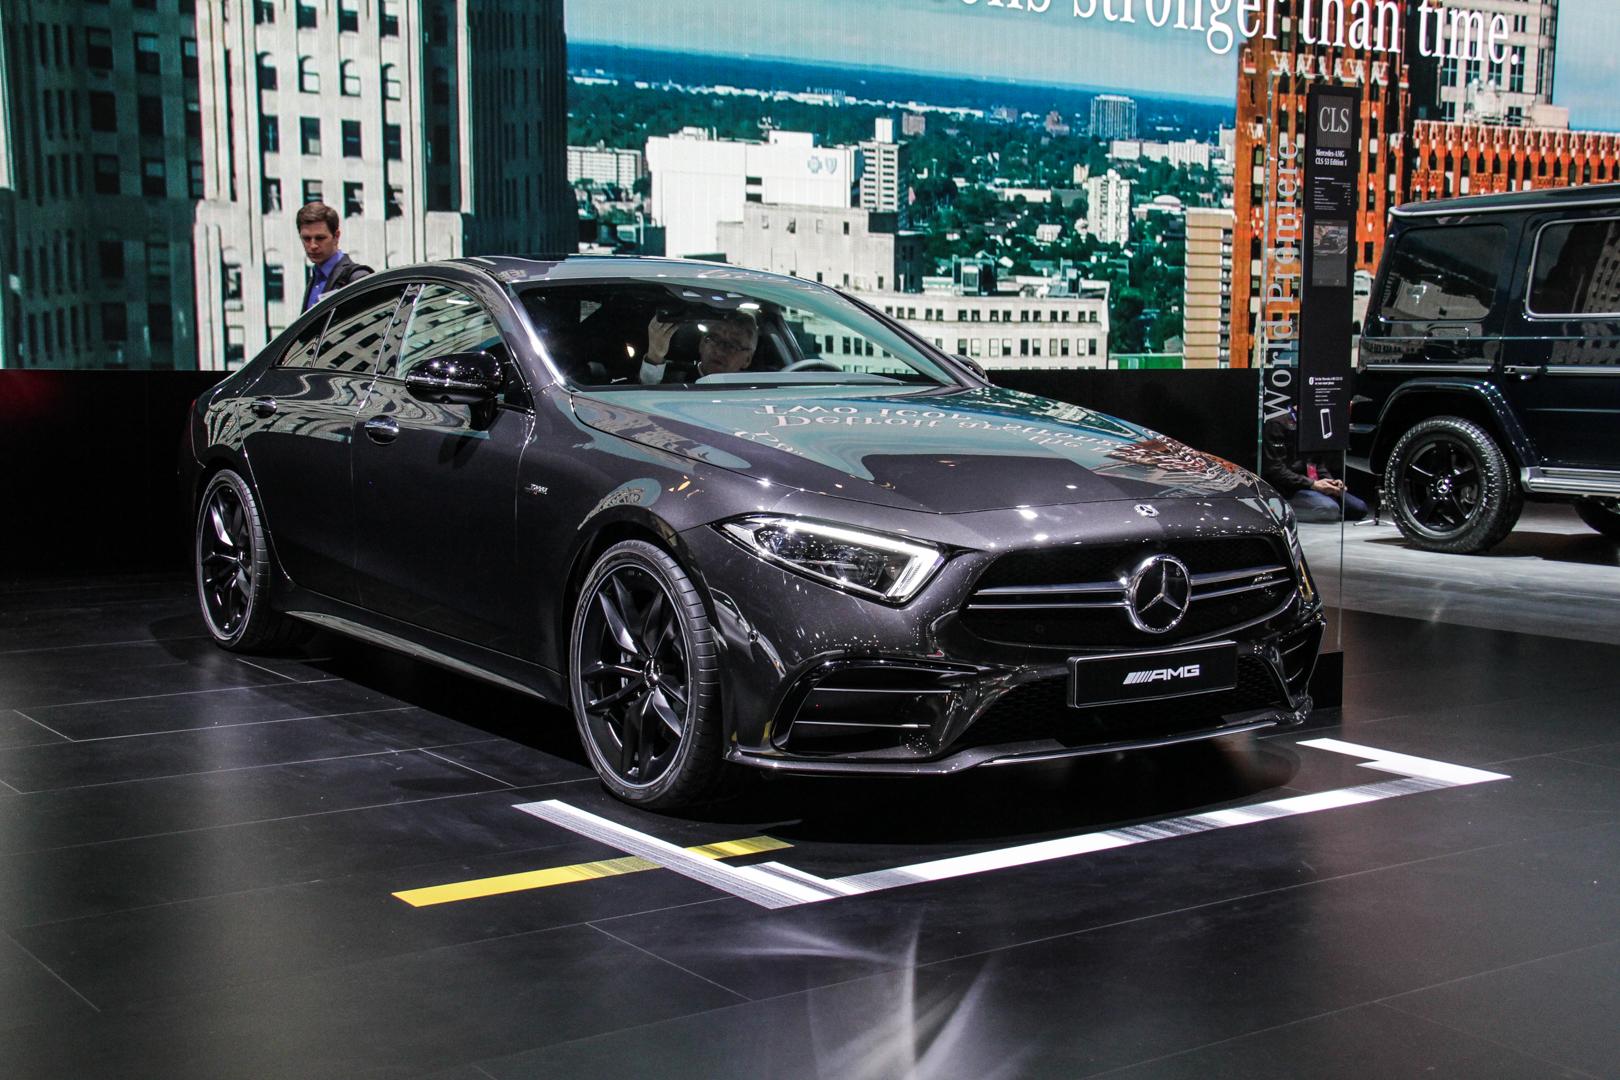 2018 detroit auto show mercedes amg cls53. Black Bedroom Furniture Sets. Home Design Ideas